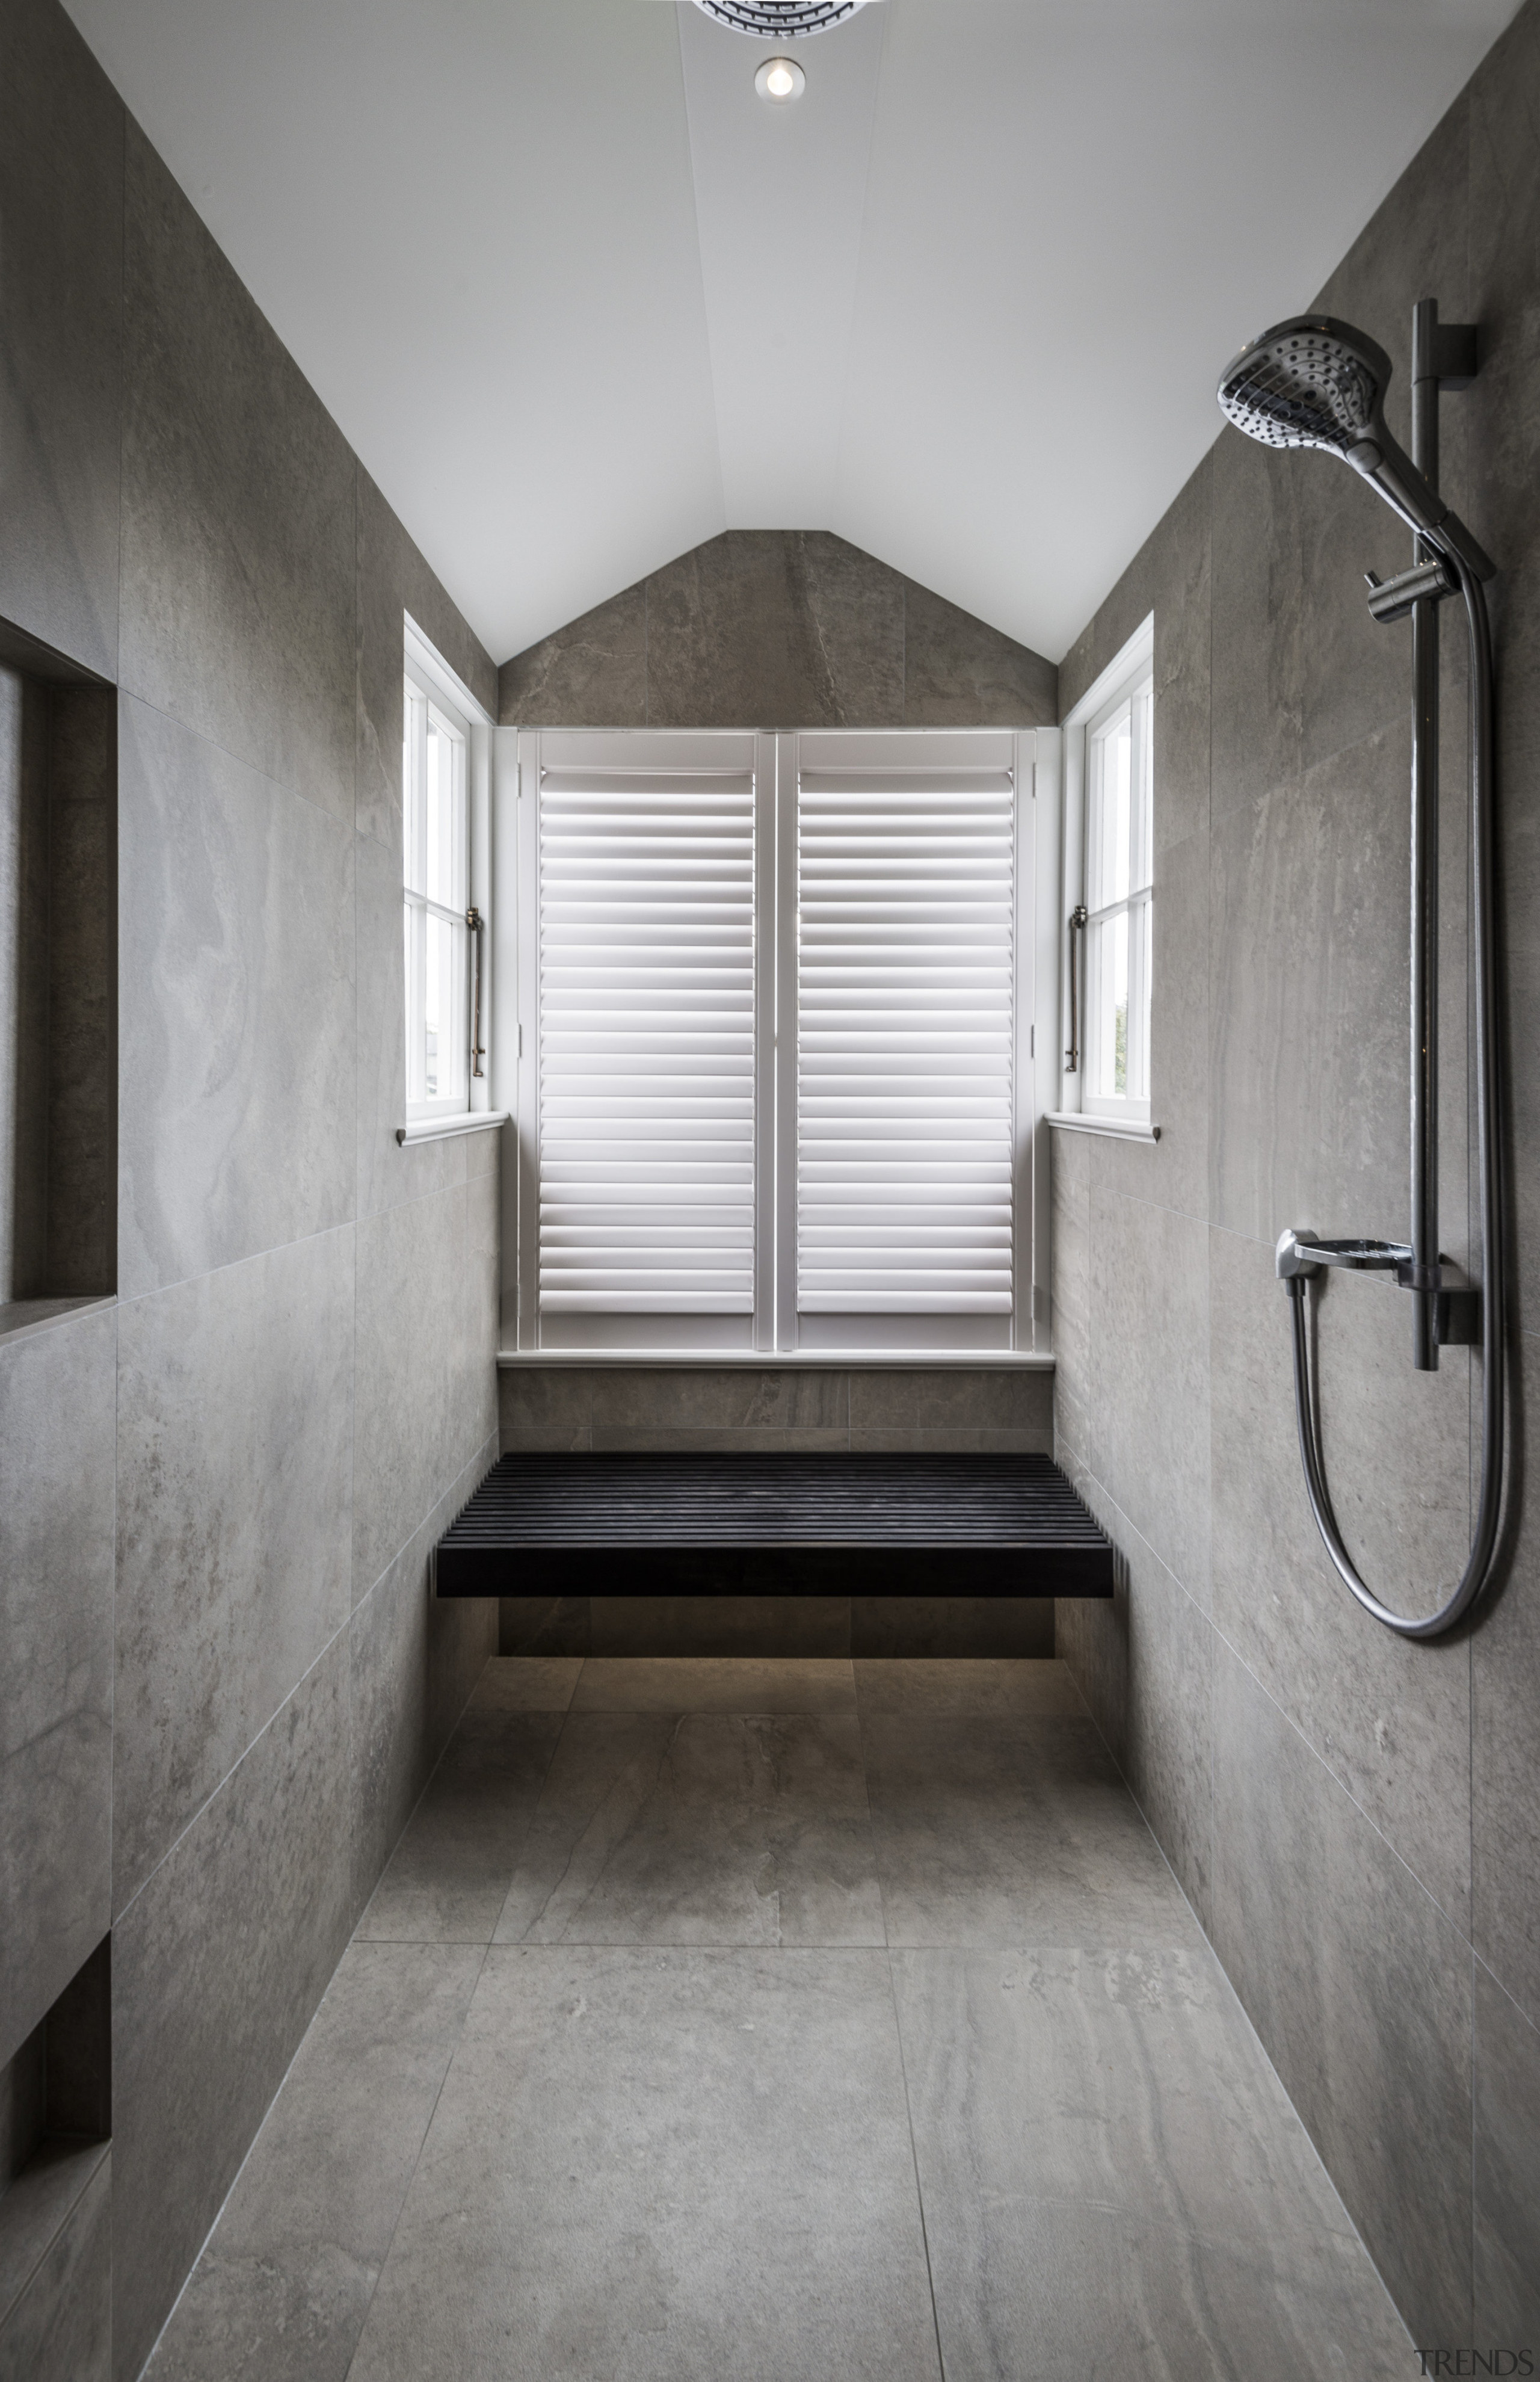 In this under-eaves bathroom, a new double shower architecture, bathroom, ceiling, daylighting, estate, floor, flooring, home, house, interior design, room, tile, gray